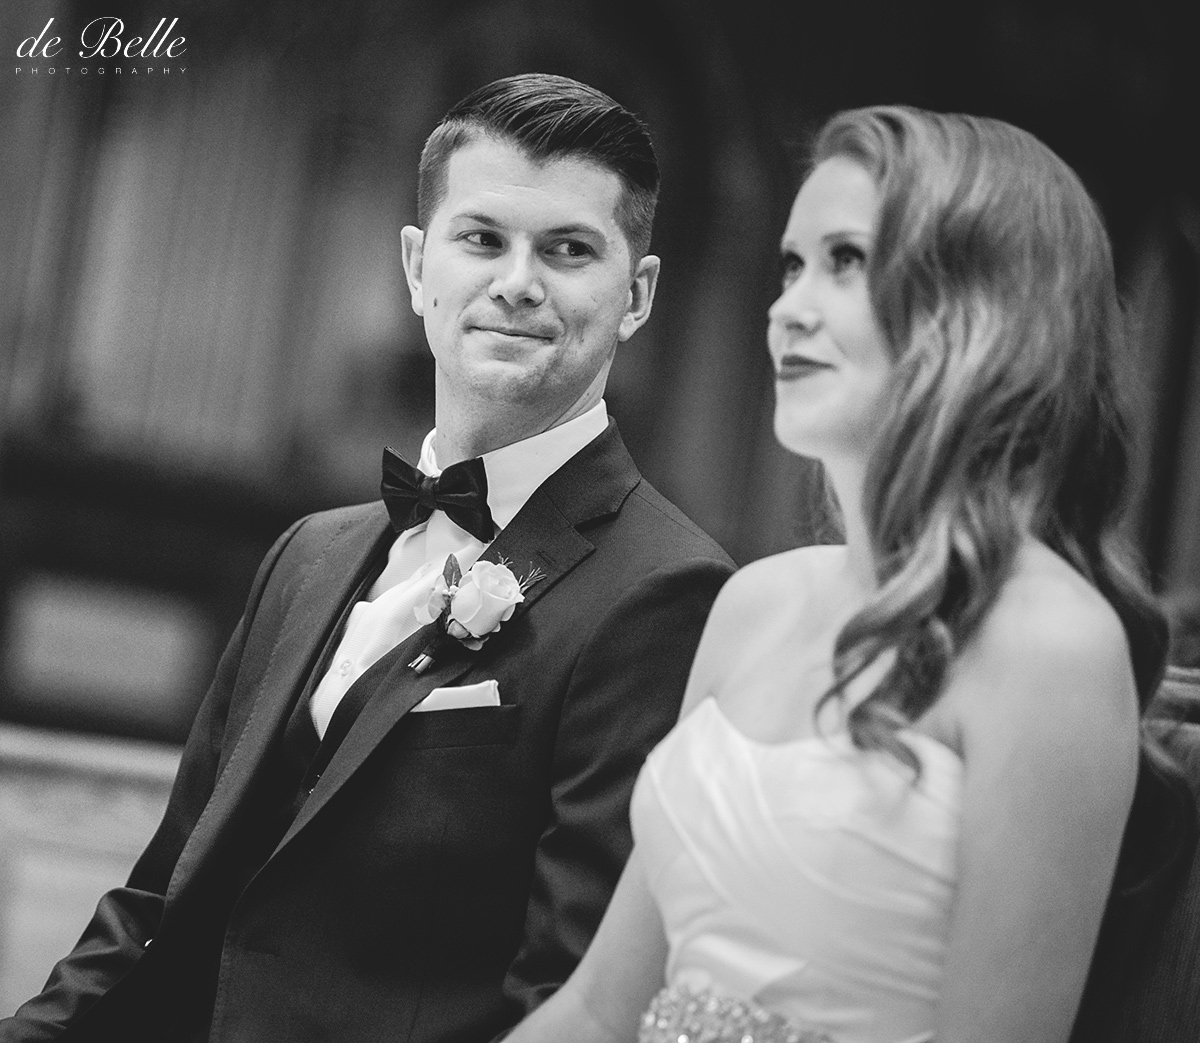 wedding_montreal_debellephotography_07